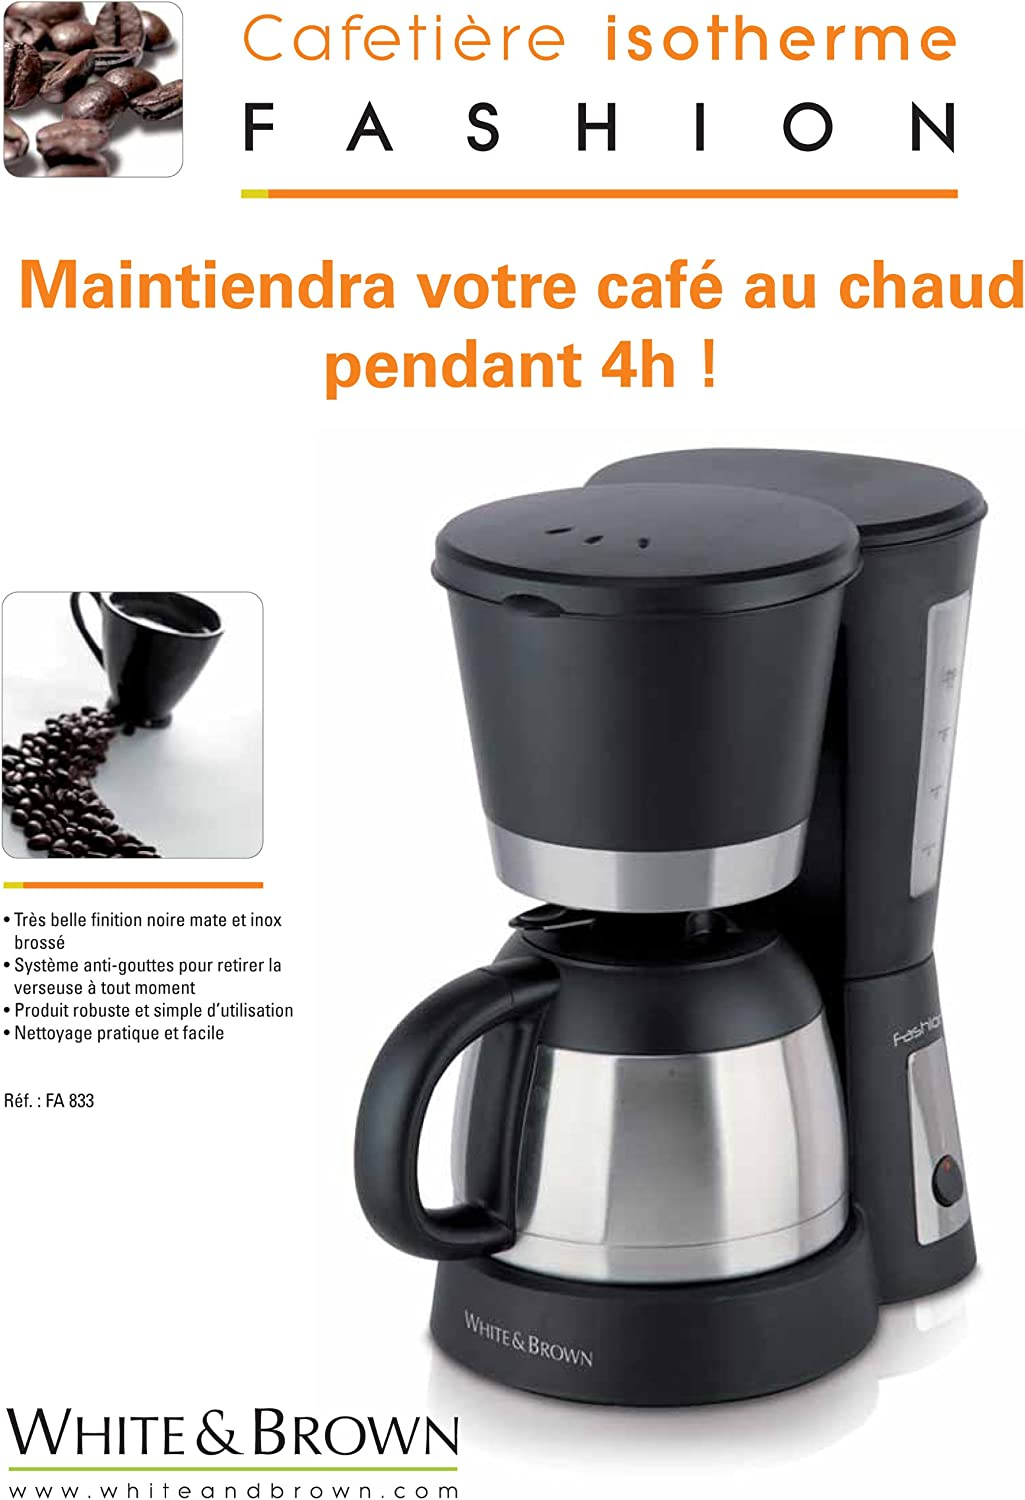 800W White and Brown inox 1 Liter 800 W Cafeti/ère isotherme FA 833 1 Litre NOIR 10 tasses